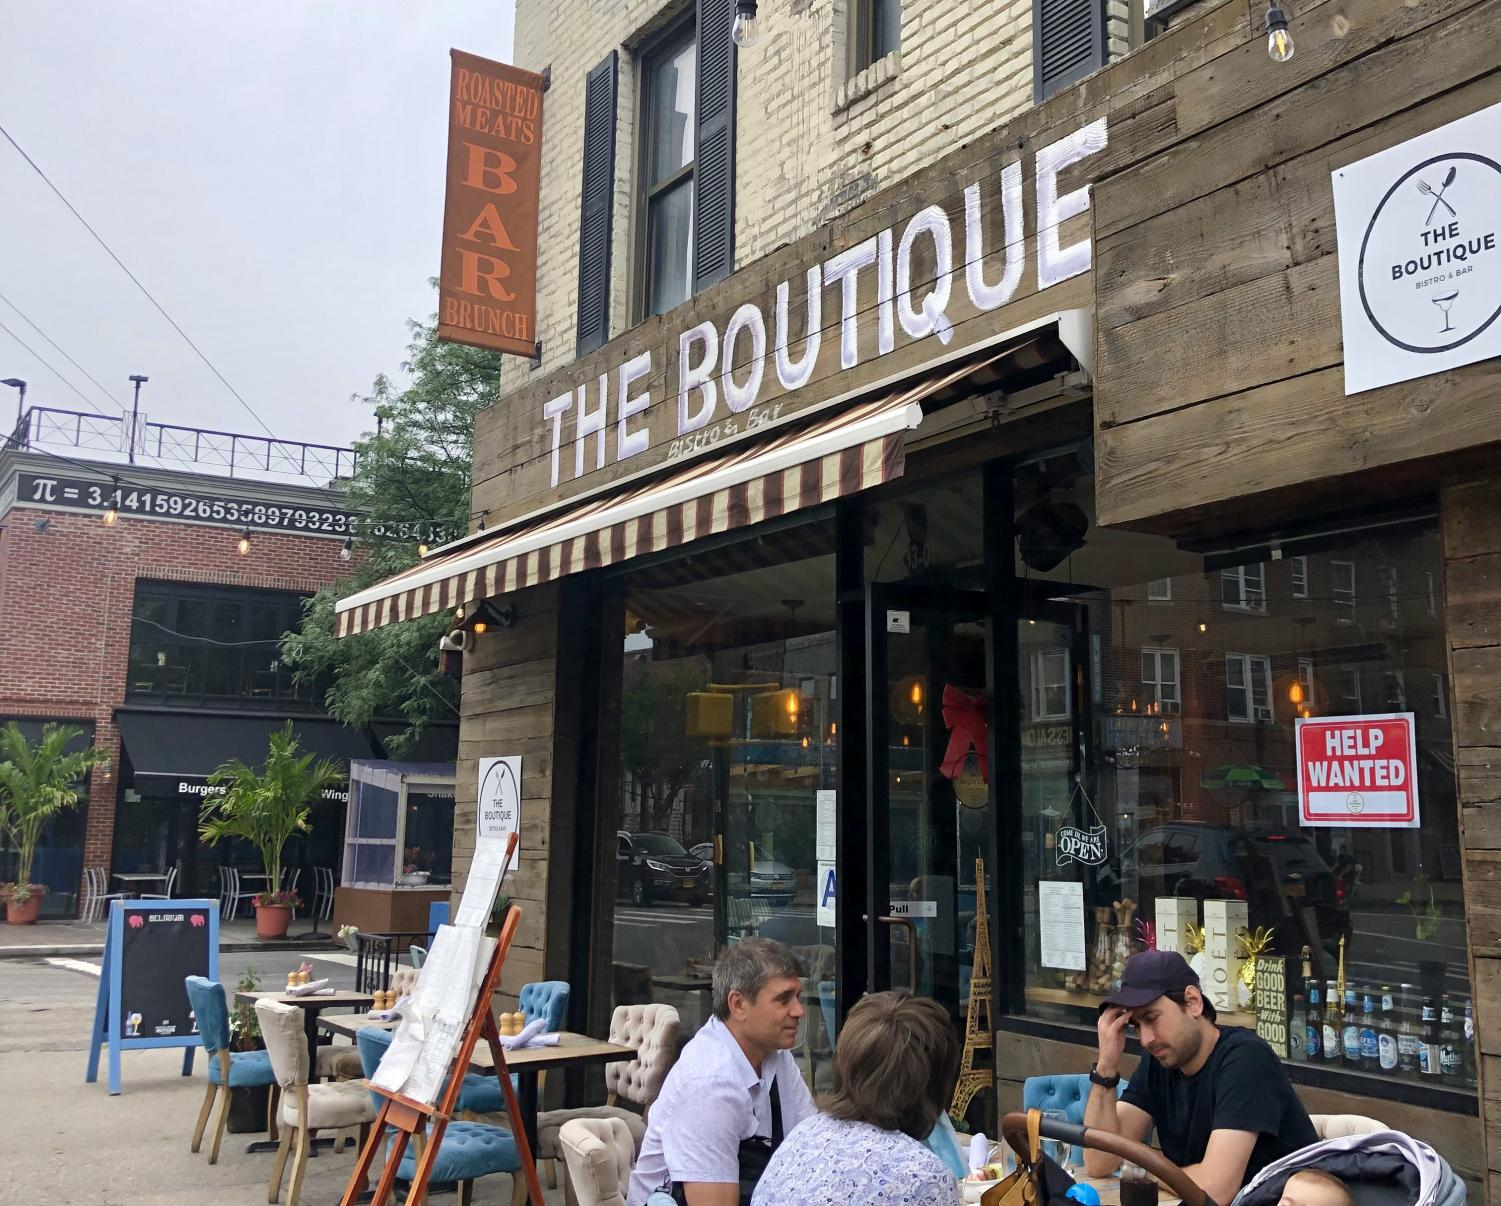 the boutique, a restaurant in Astoria, with outdoor seating